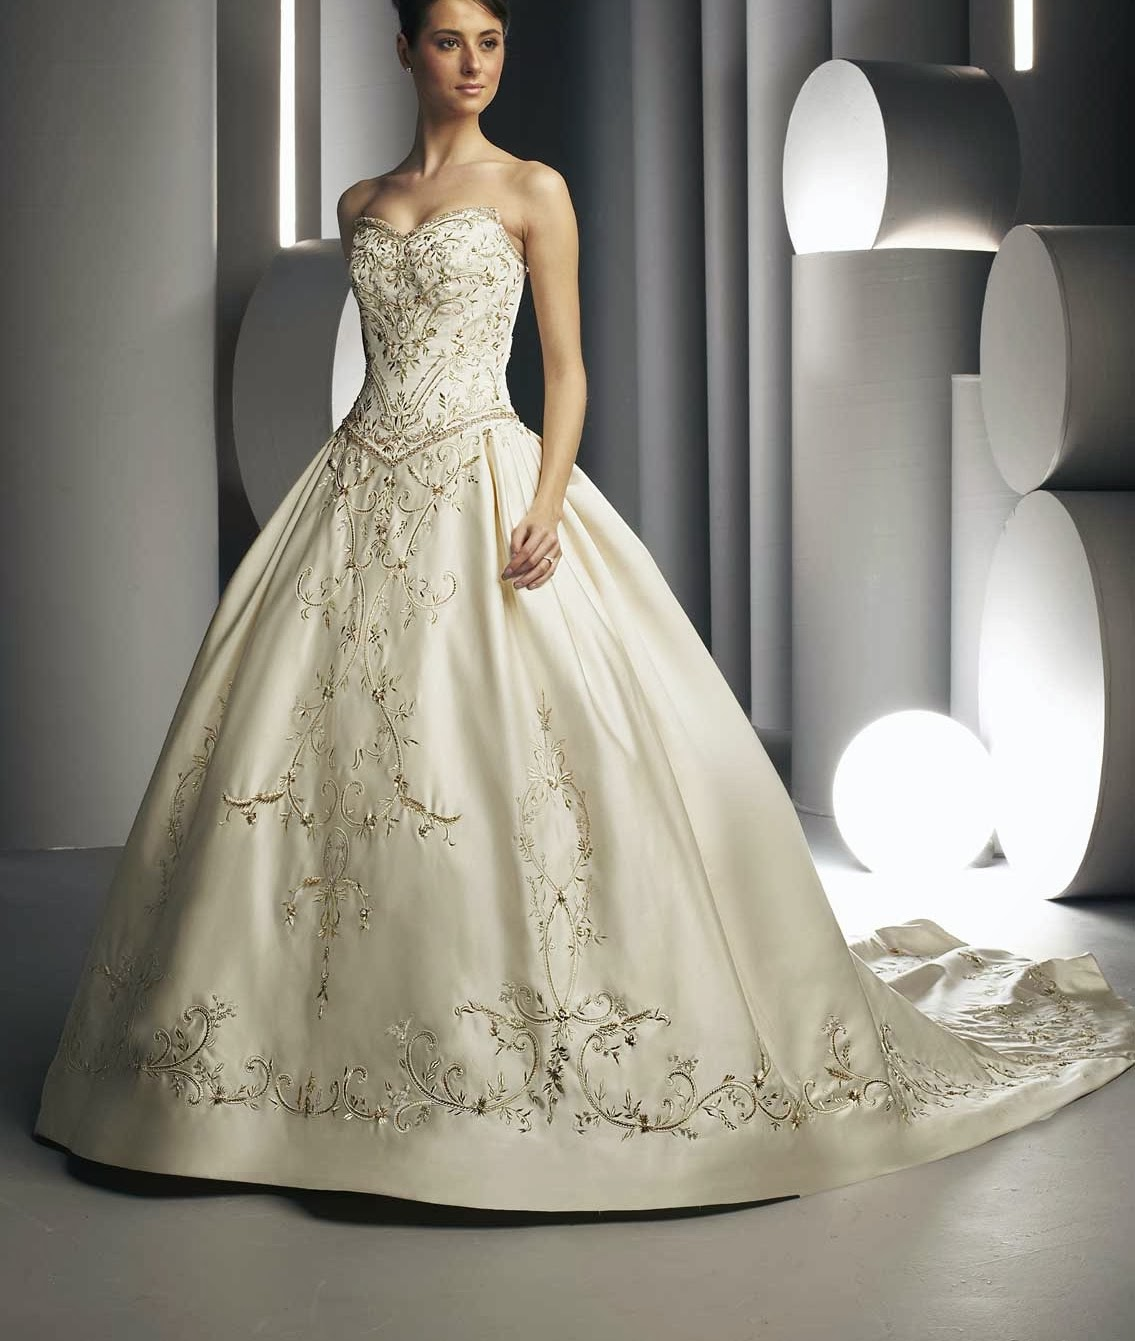 Wedding Gown Color Meanings: Wedding & Event Planning. Destination Wedding Specialist